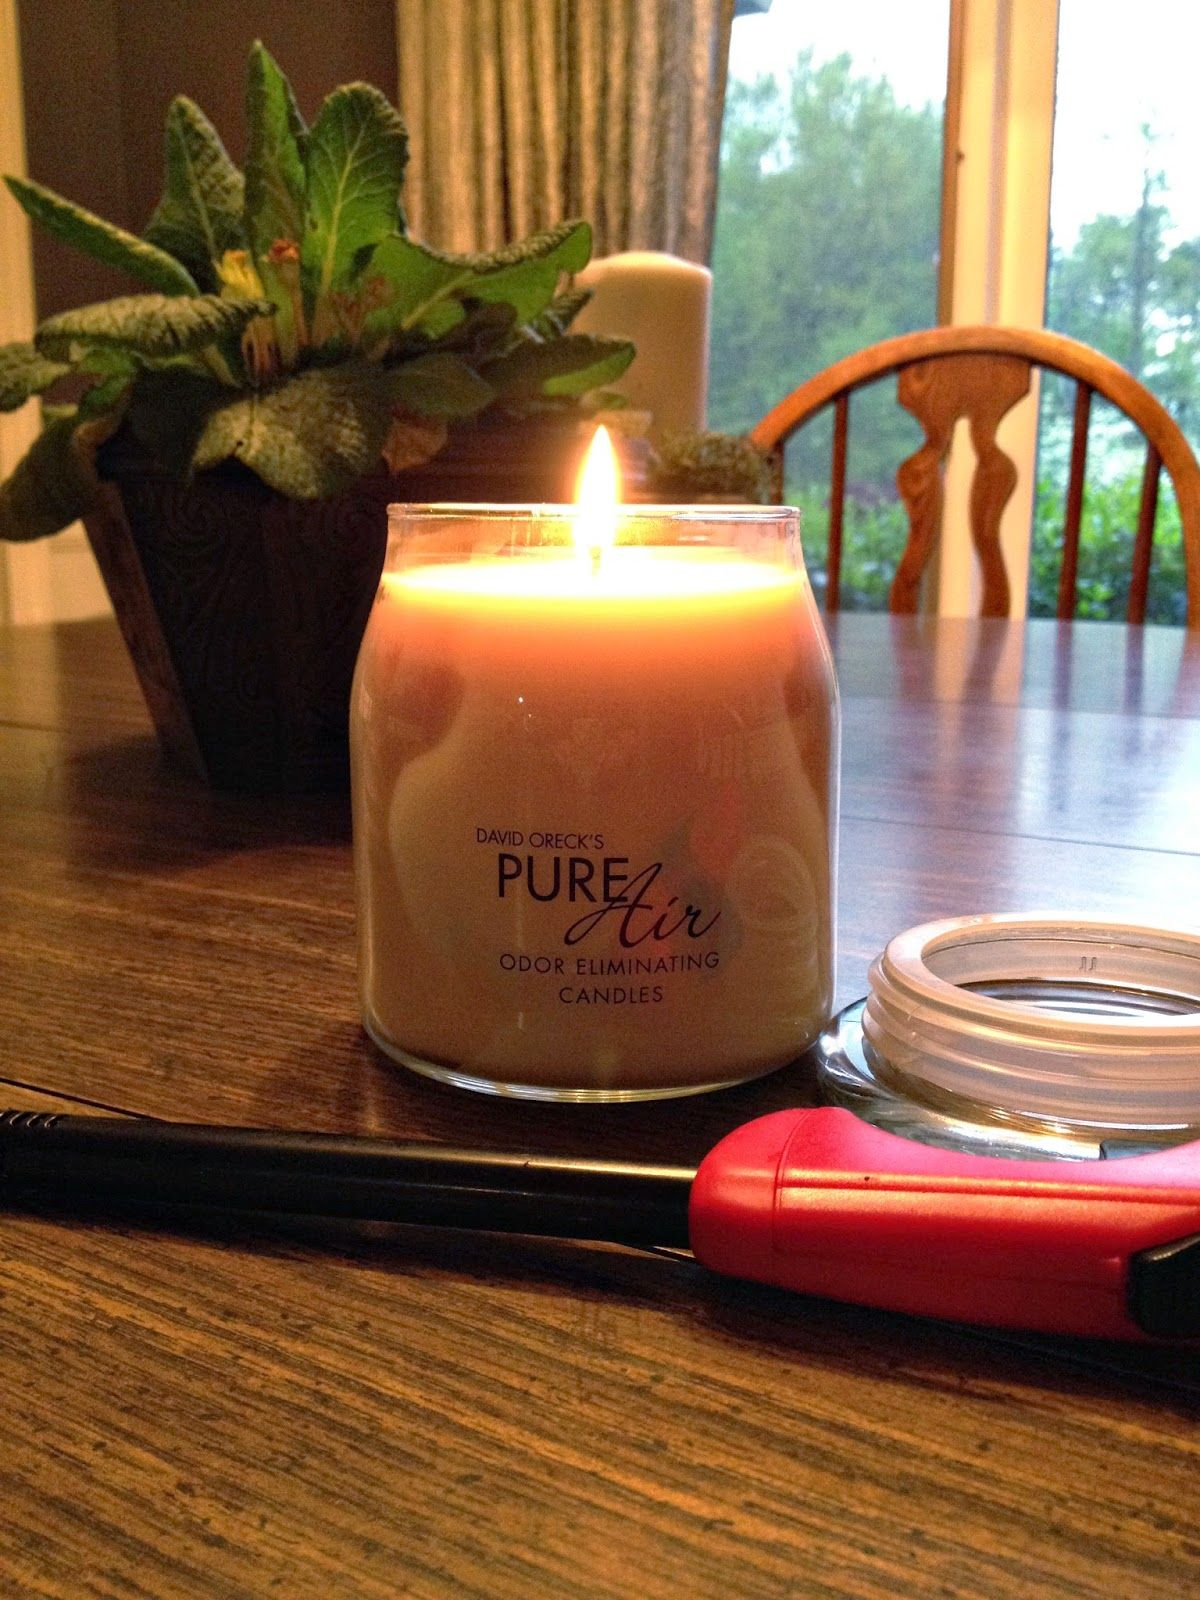 Fiddle dee dee fragrant passage candle company for the home